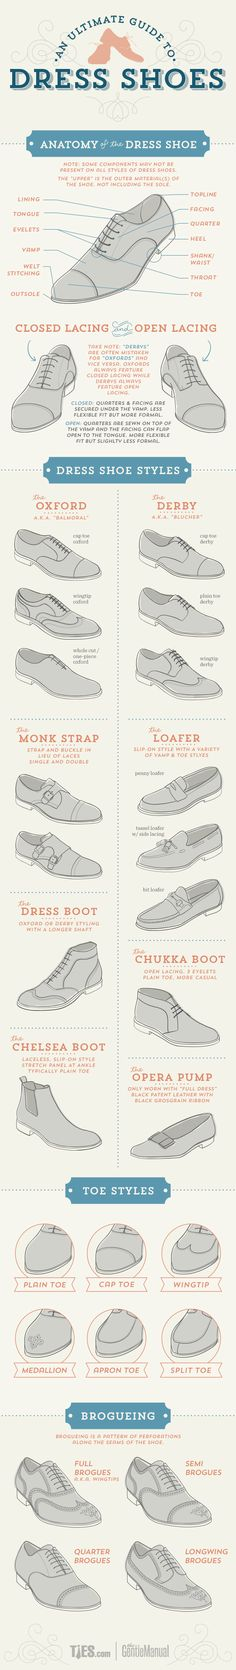 The Ultimate Guide to Dress Shoes